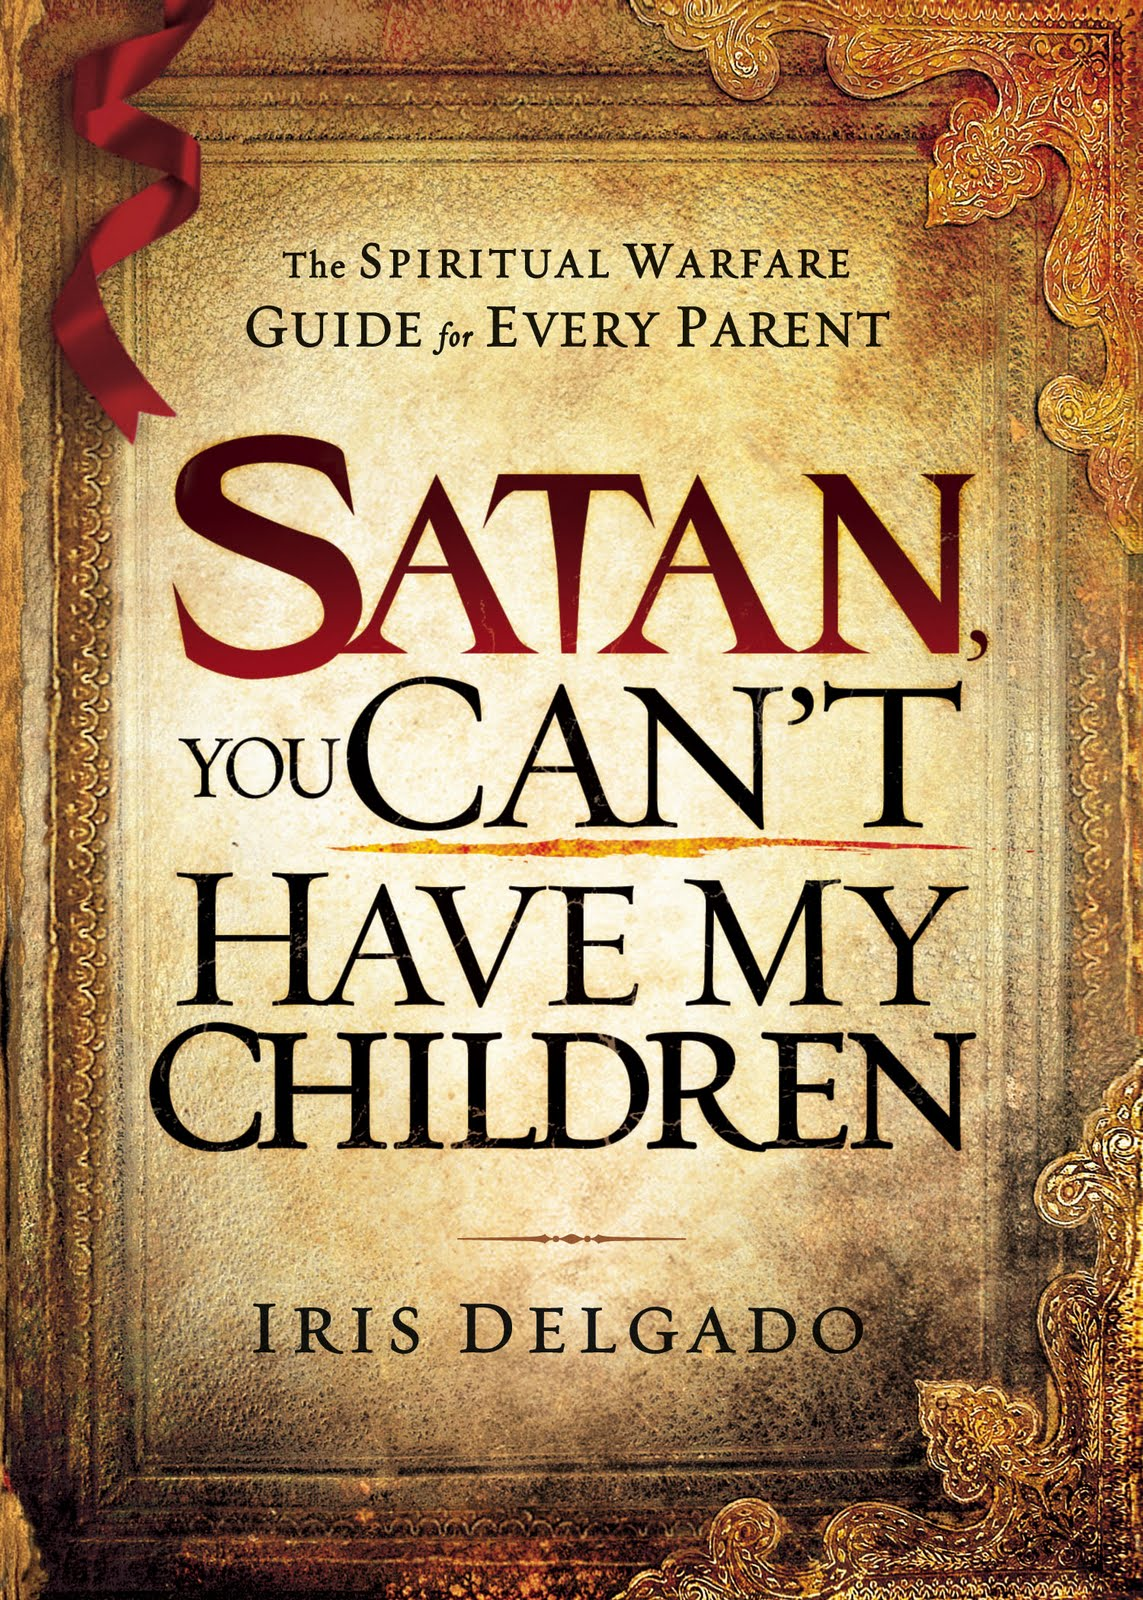 First wild card tours satan you cant have my children by iris delgado first wild card tours satan you cant have my children by iris delgado fandeluxe Image collections